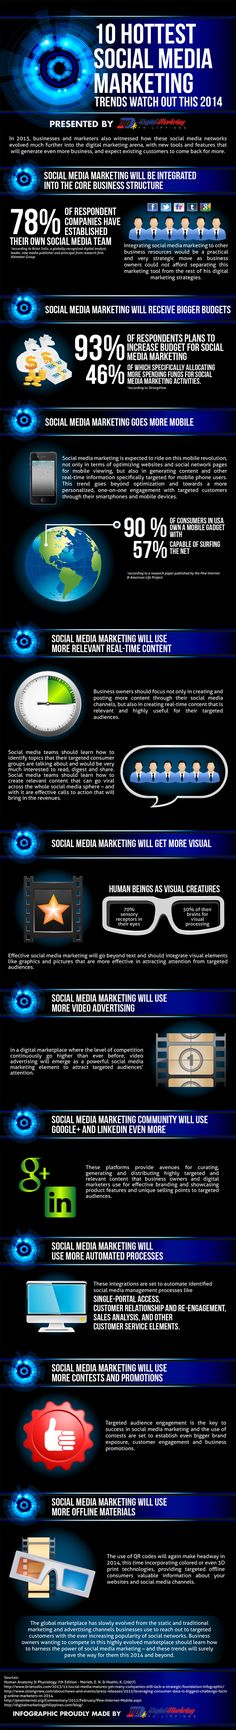 SOCIAL MEDIA -        10 Hottest Social Media Marketing Trends in 2014...